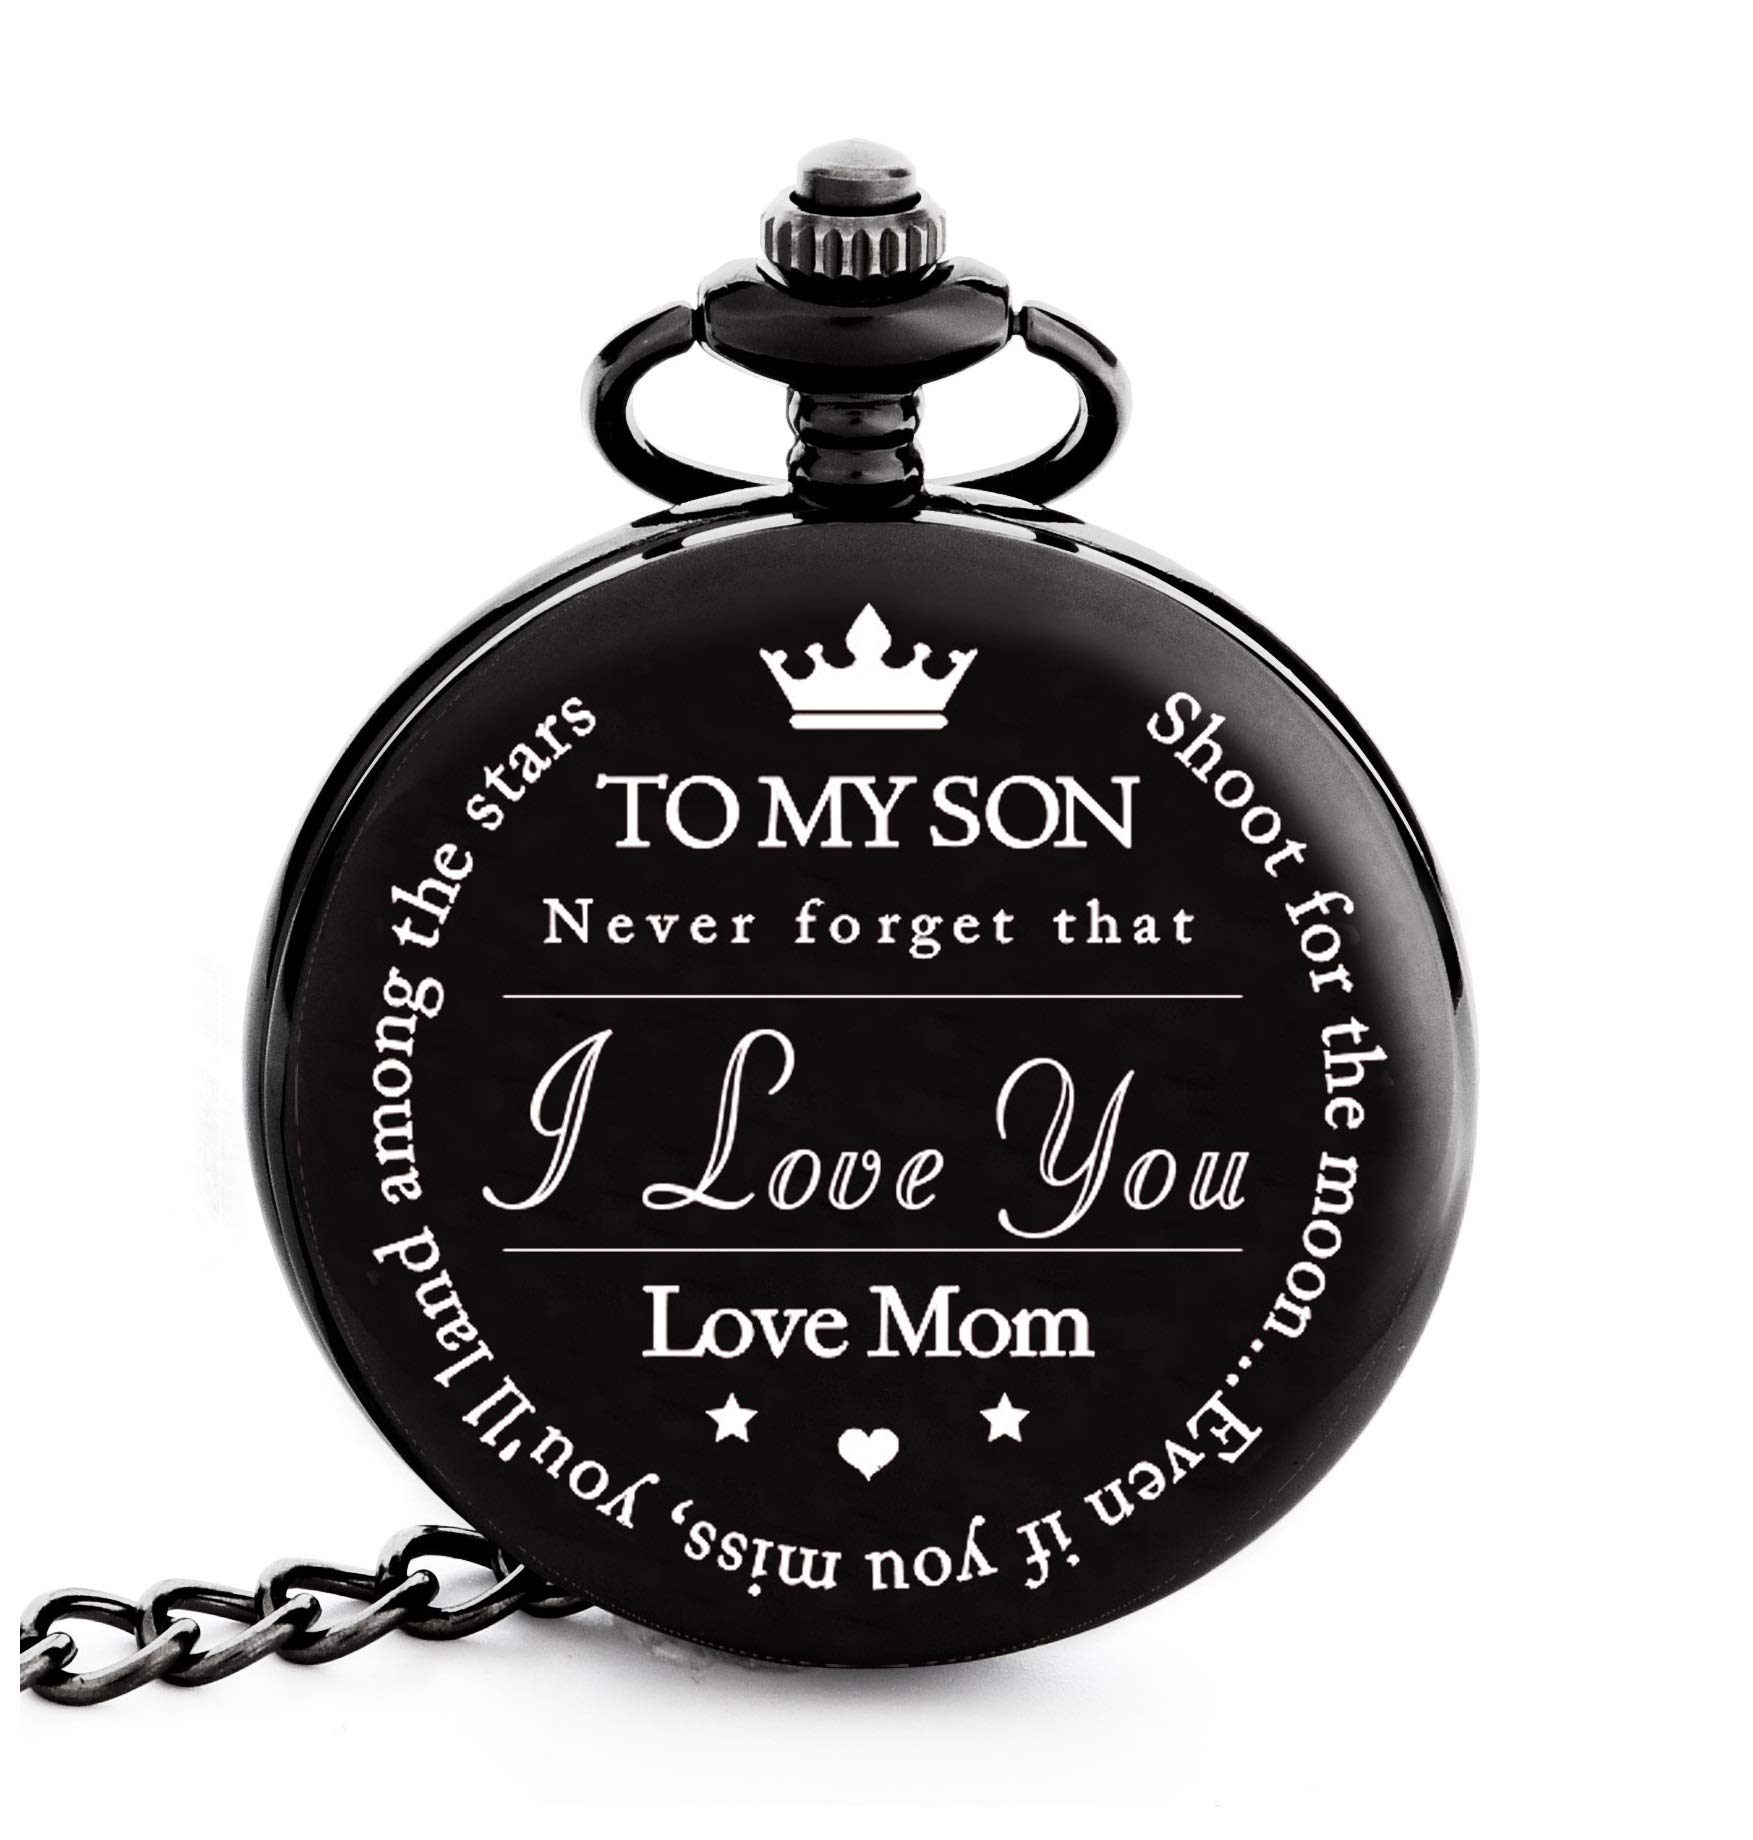 To My Son | Mother and Son Graduation 2019 Gift - Engraved ''To My Son Love Mom'' Pocket Watch - Perfect Gifts for Son from Mom for Christmas, Valentines Day, Birthday